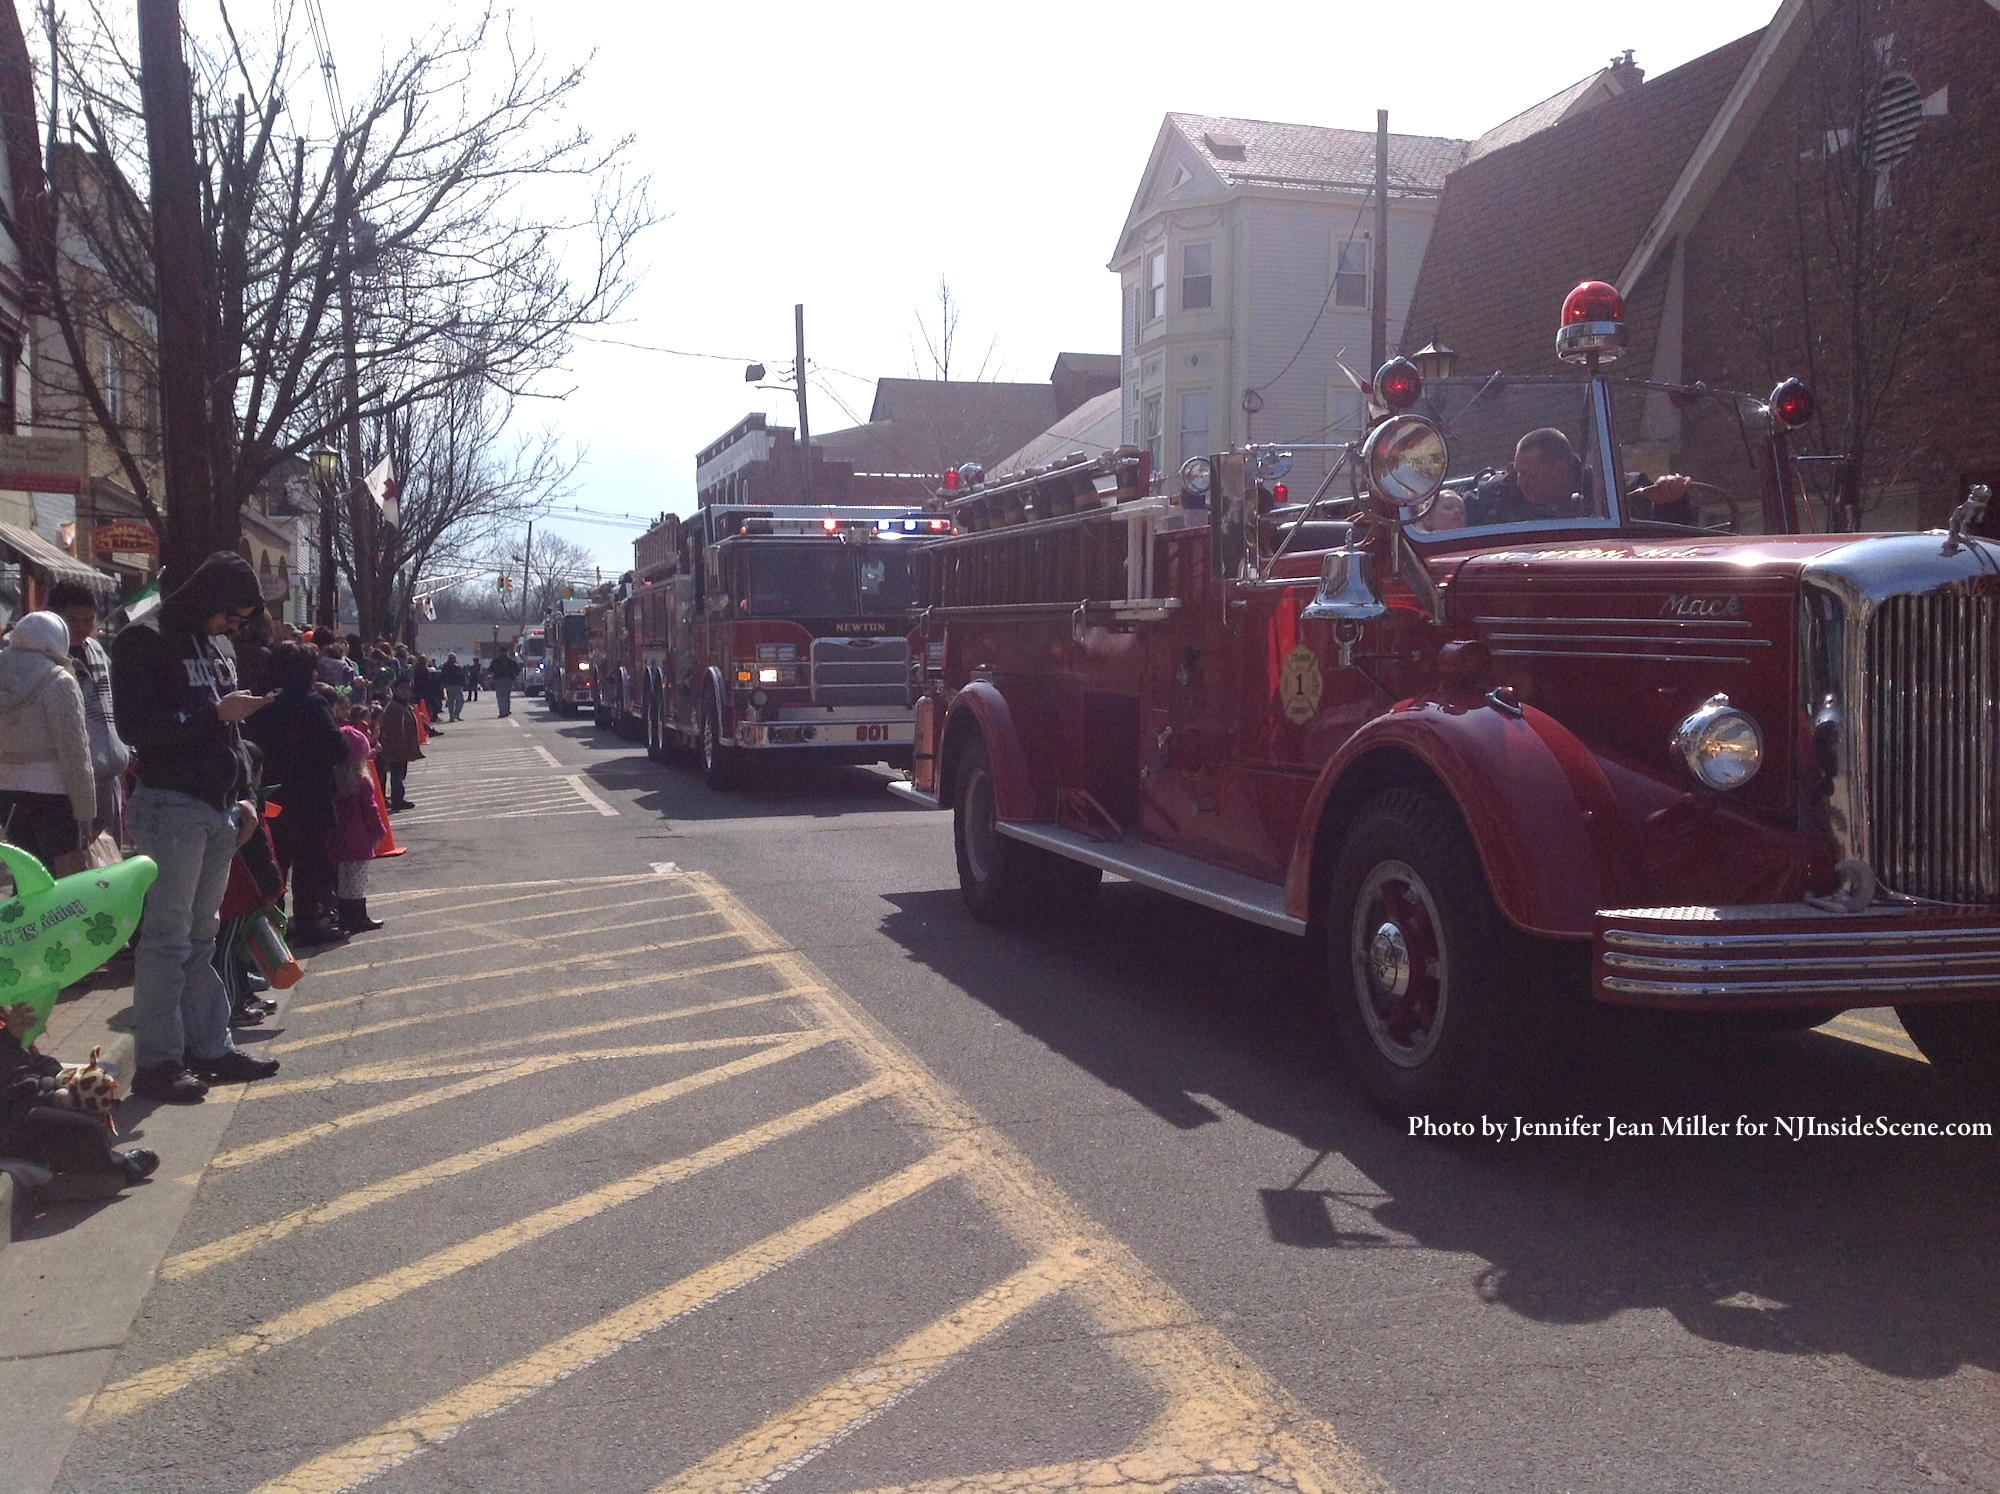 A line of firetrucks led by Newton's prized Mack, made their way down Spring Street. Photo by Jennifer Jean Miller.